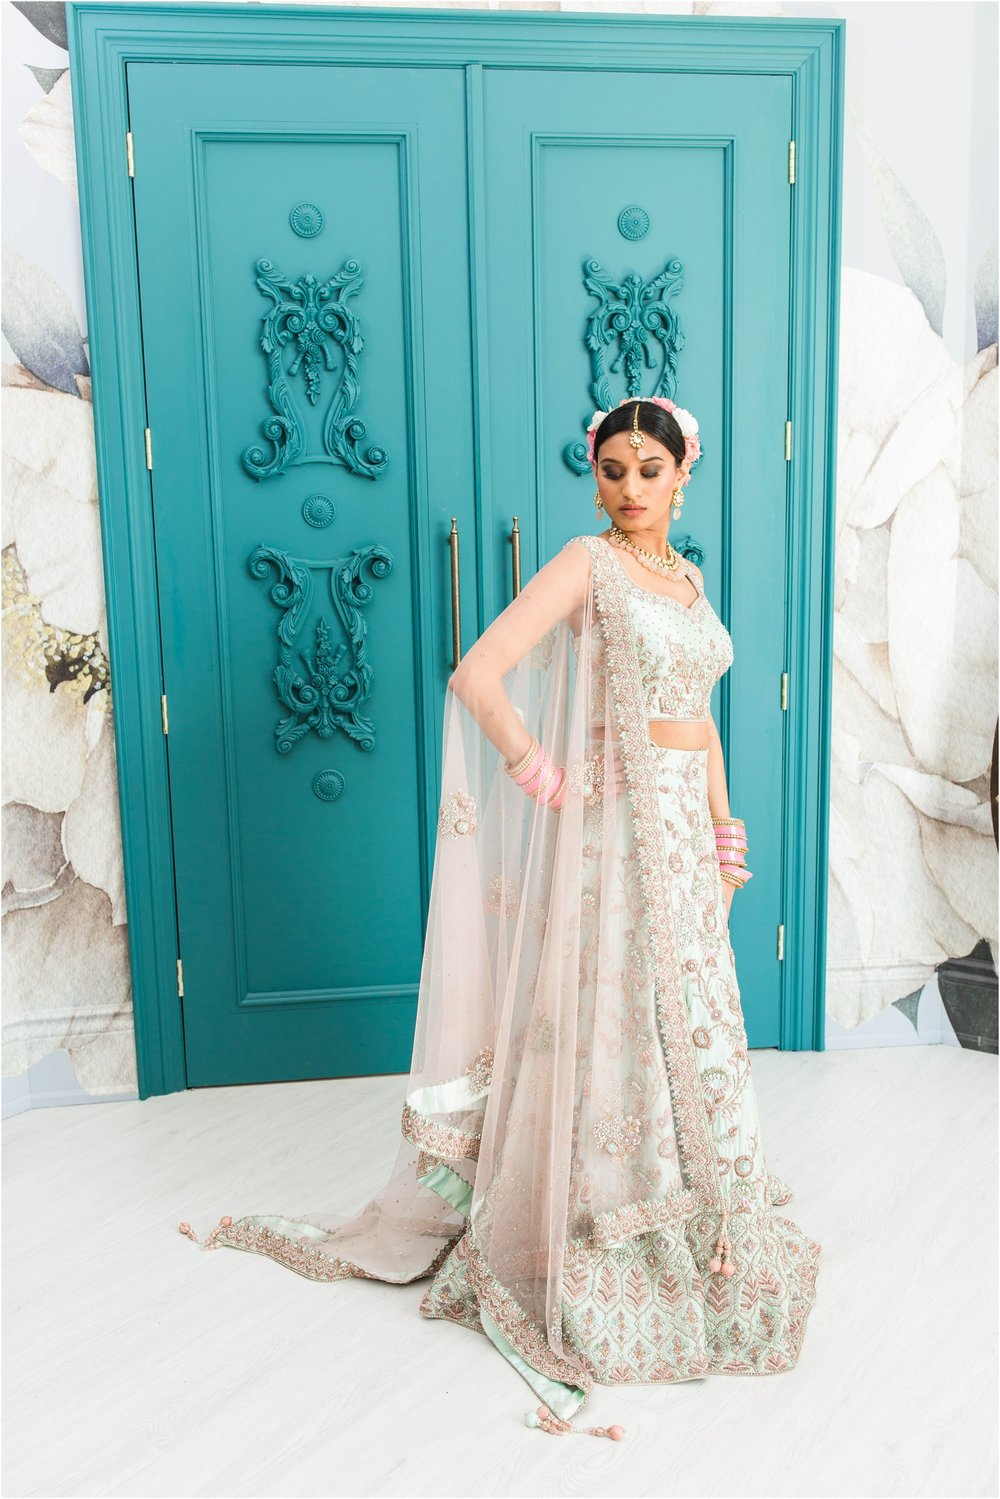 Mint-Room-Studios-Rustic-Blush-Styled-Shoot-Toronto-Mississauga-Brampton-Scarborough-GTA-Pakistani-Indian-Wedding-Engagement-Photographer-Photography_0006.jpg